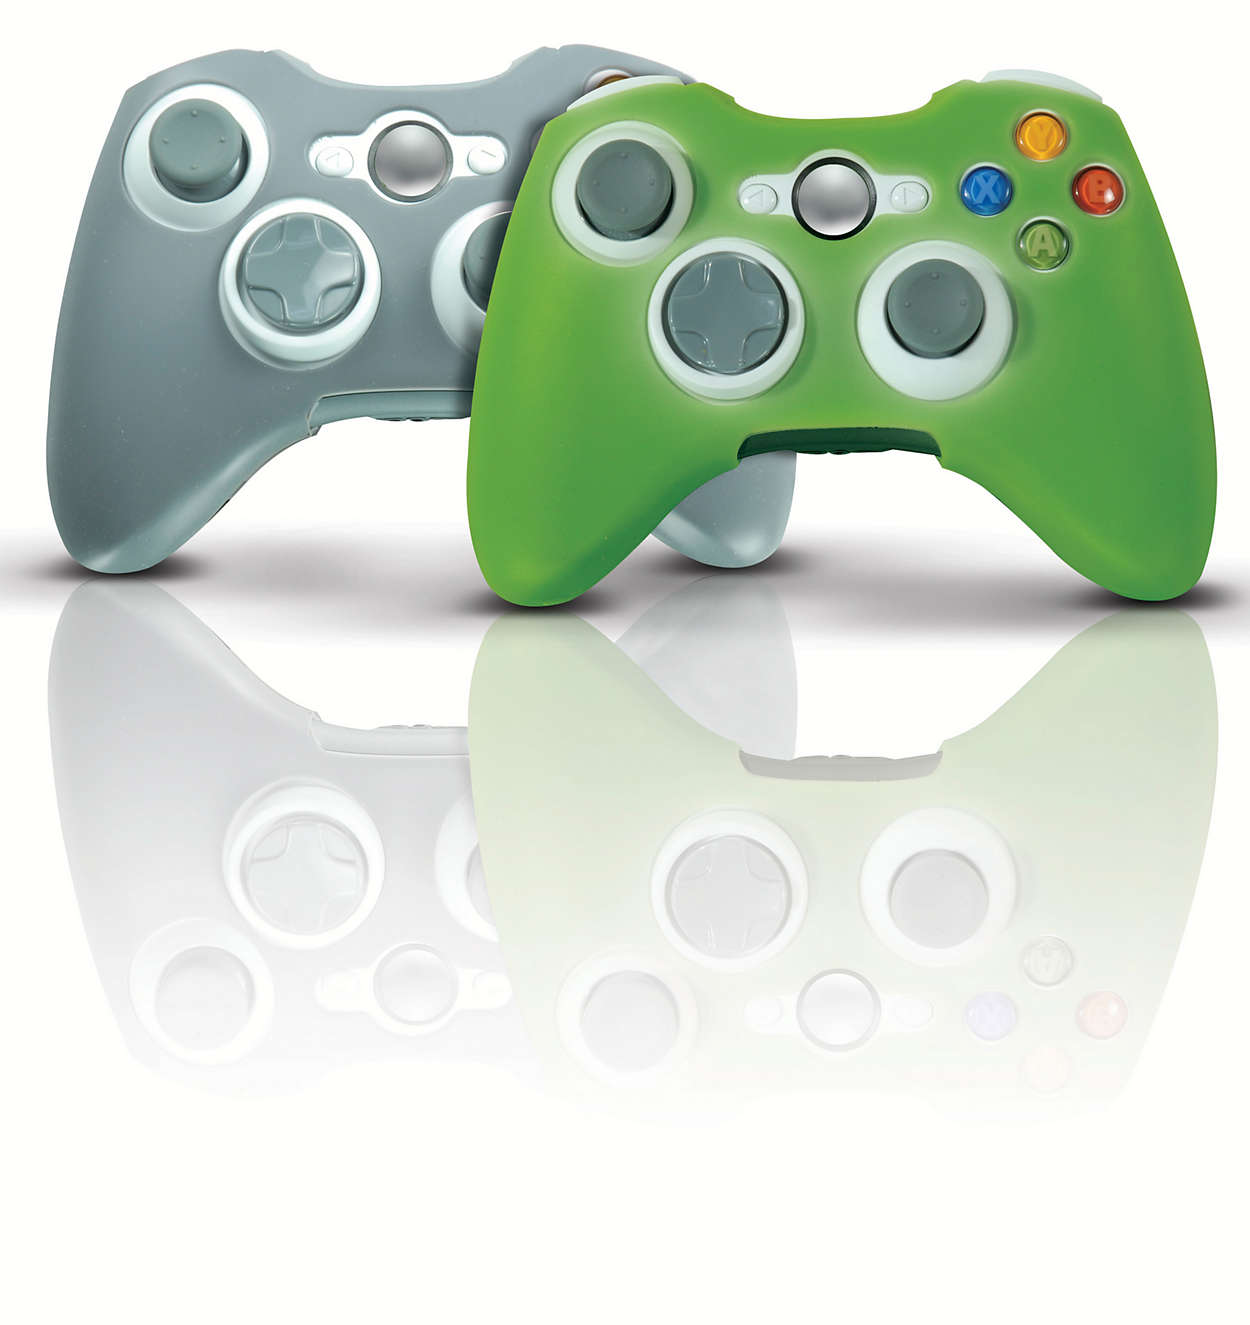 Protect your Xbox 360